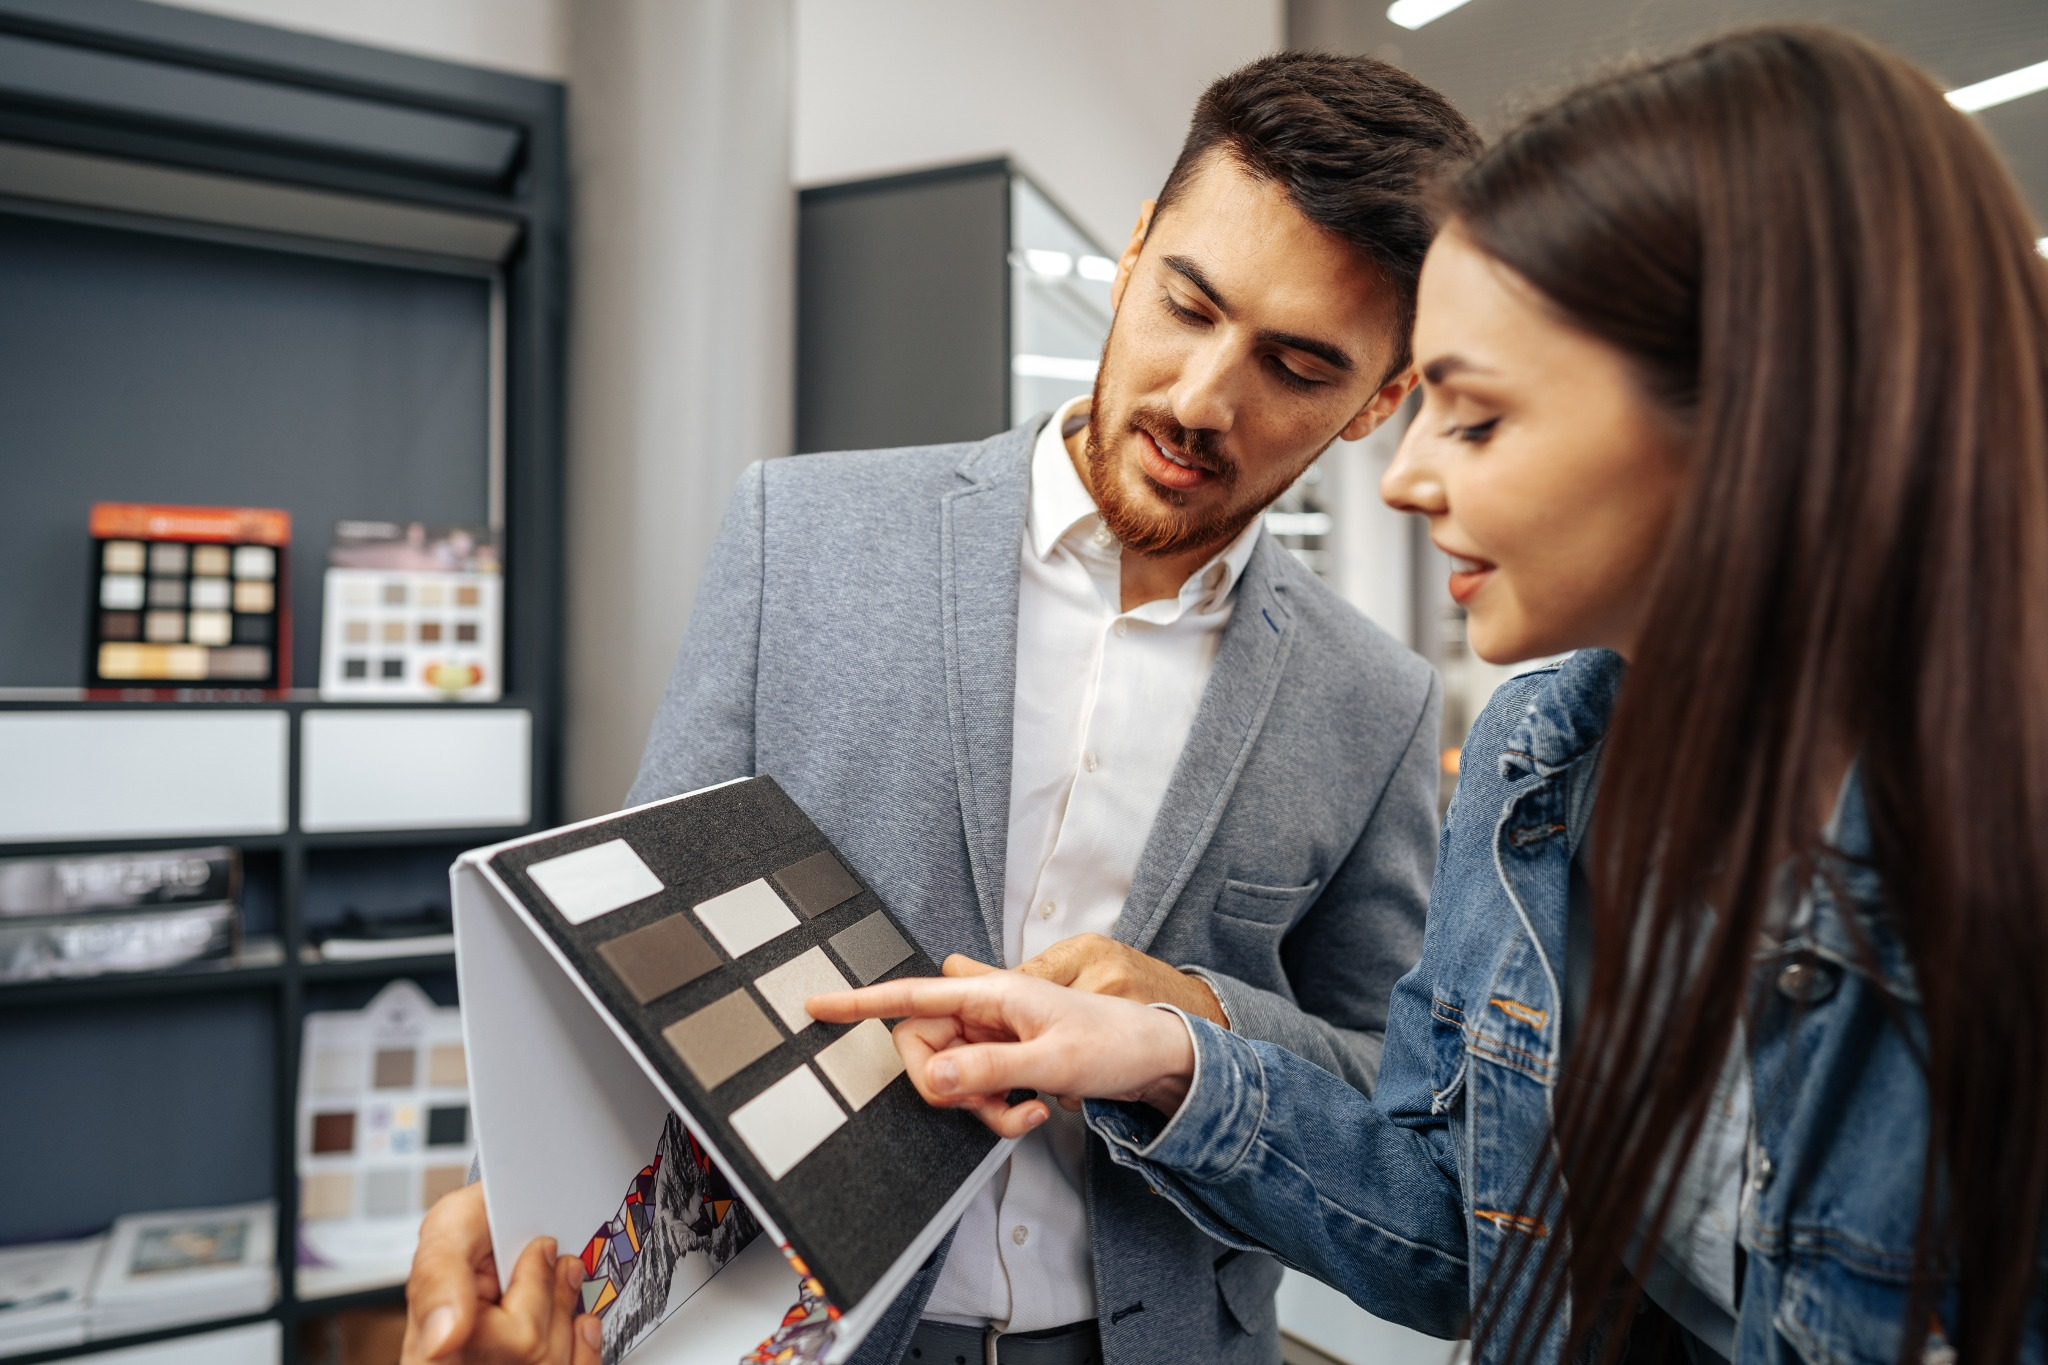 Woman selecting swatches for kitchen counter ideas with a salesperson.